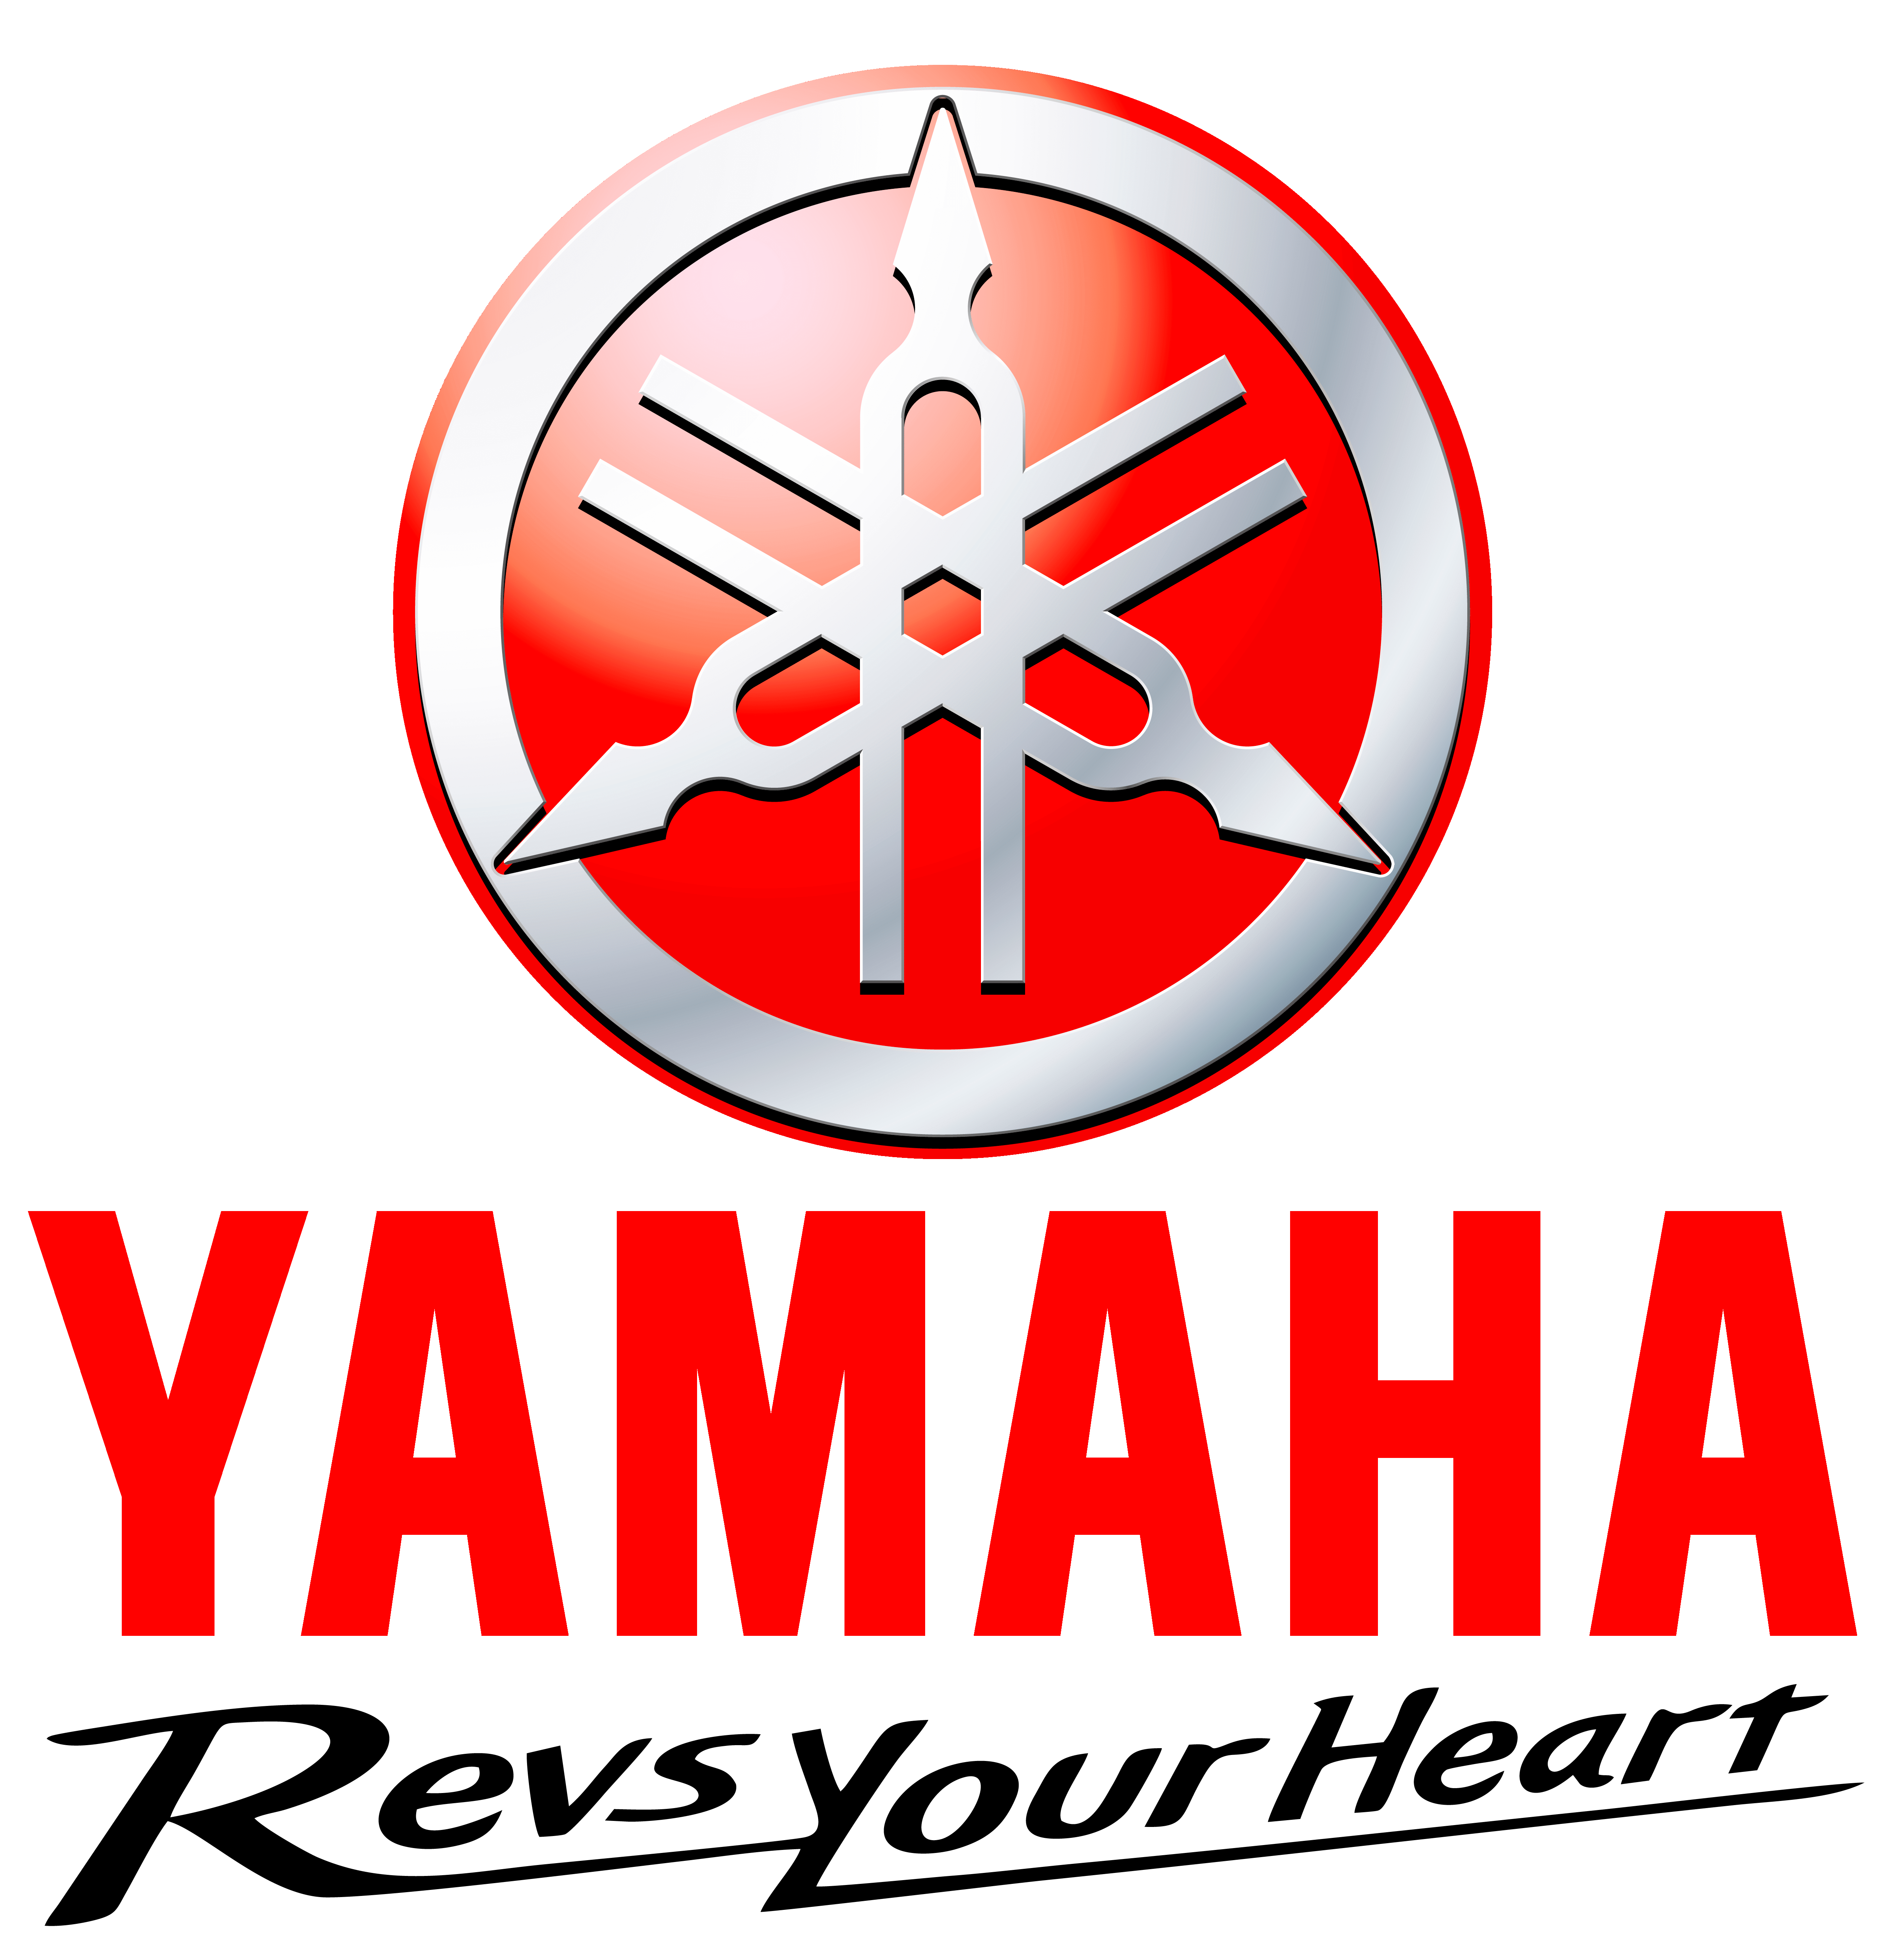 Yamaha Revs Your Heart Png Logo 3873 Free Transparent Png Logos